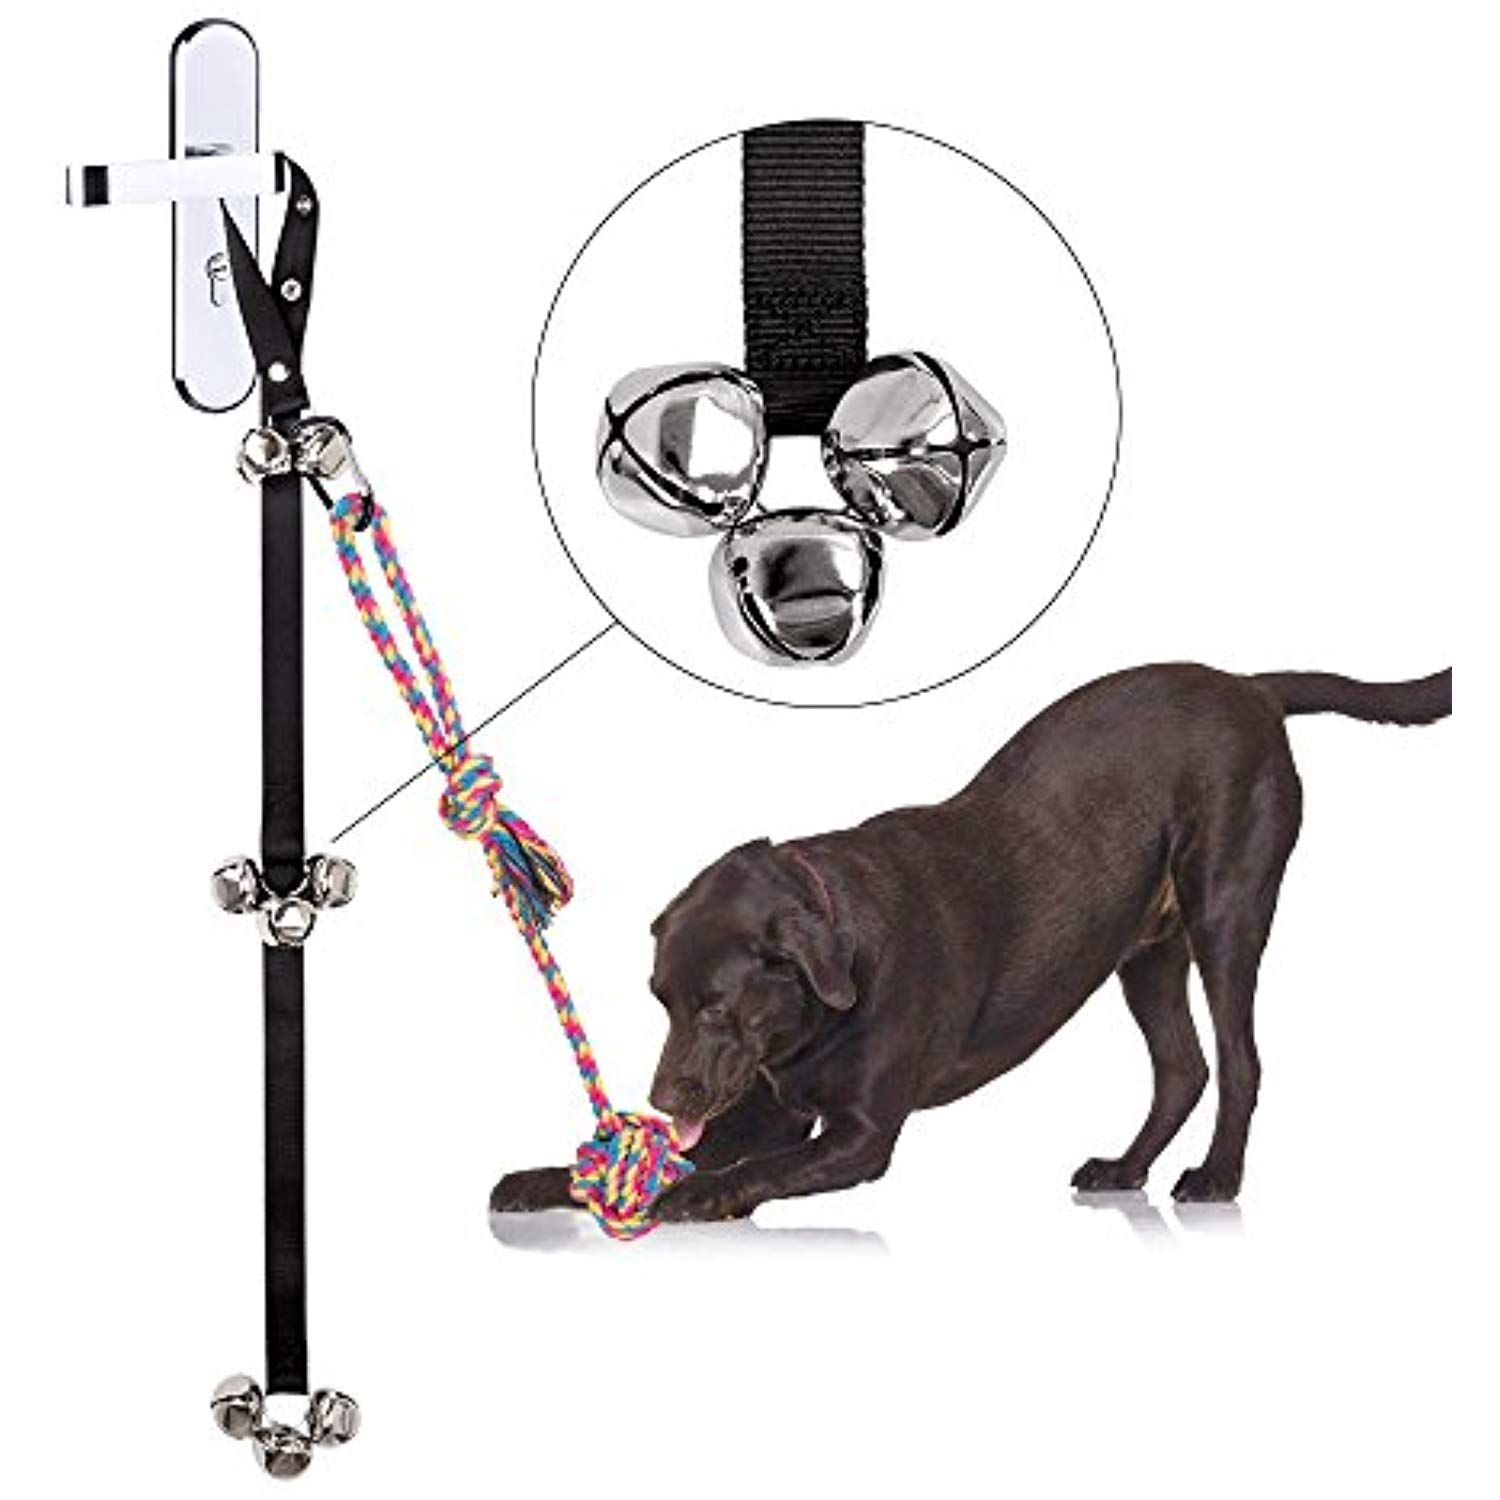 Potty Bells Dog Doorbell For Puppy Potty Training Housetraining From Siivton Doggie Doorbell With 8 Loud Bells Potty Training Puppy Potty Bells House Training